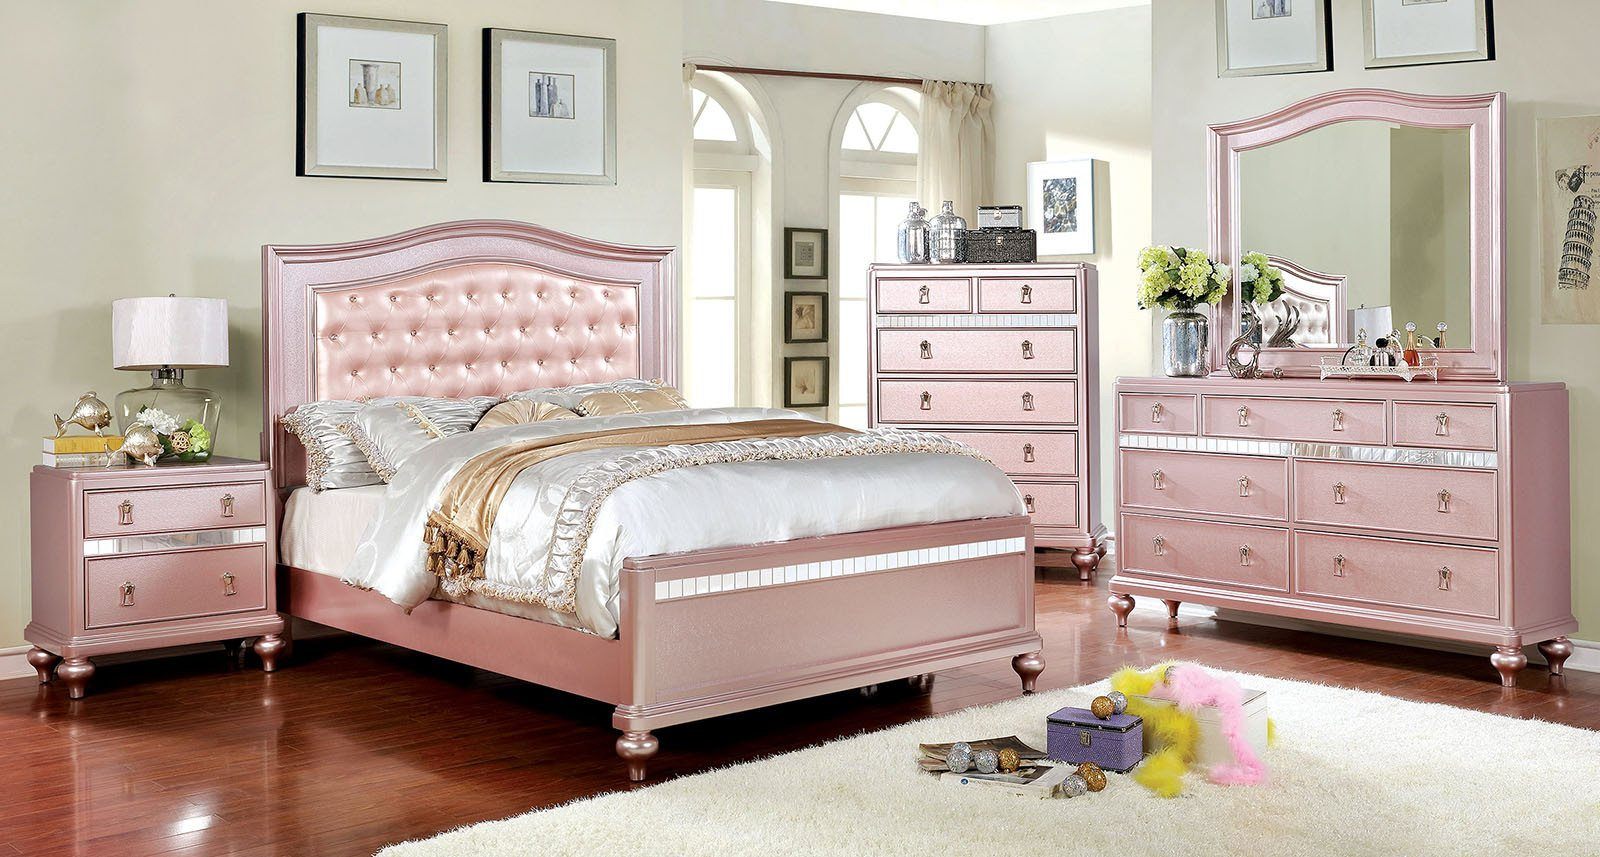 Grey Queen Bedroom Set Elegant Ariston Rose Gold Finish Queen Size Bed with Mirrored Trim Jeweled button Tufted Padded Leather Headboard